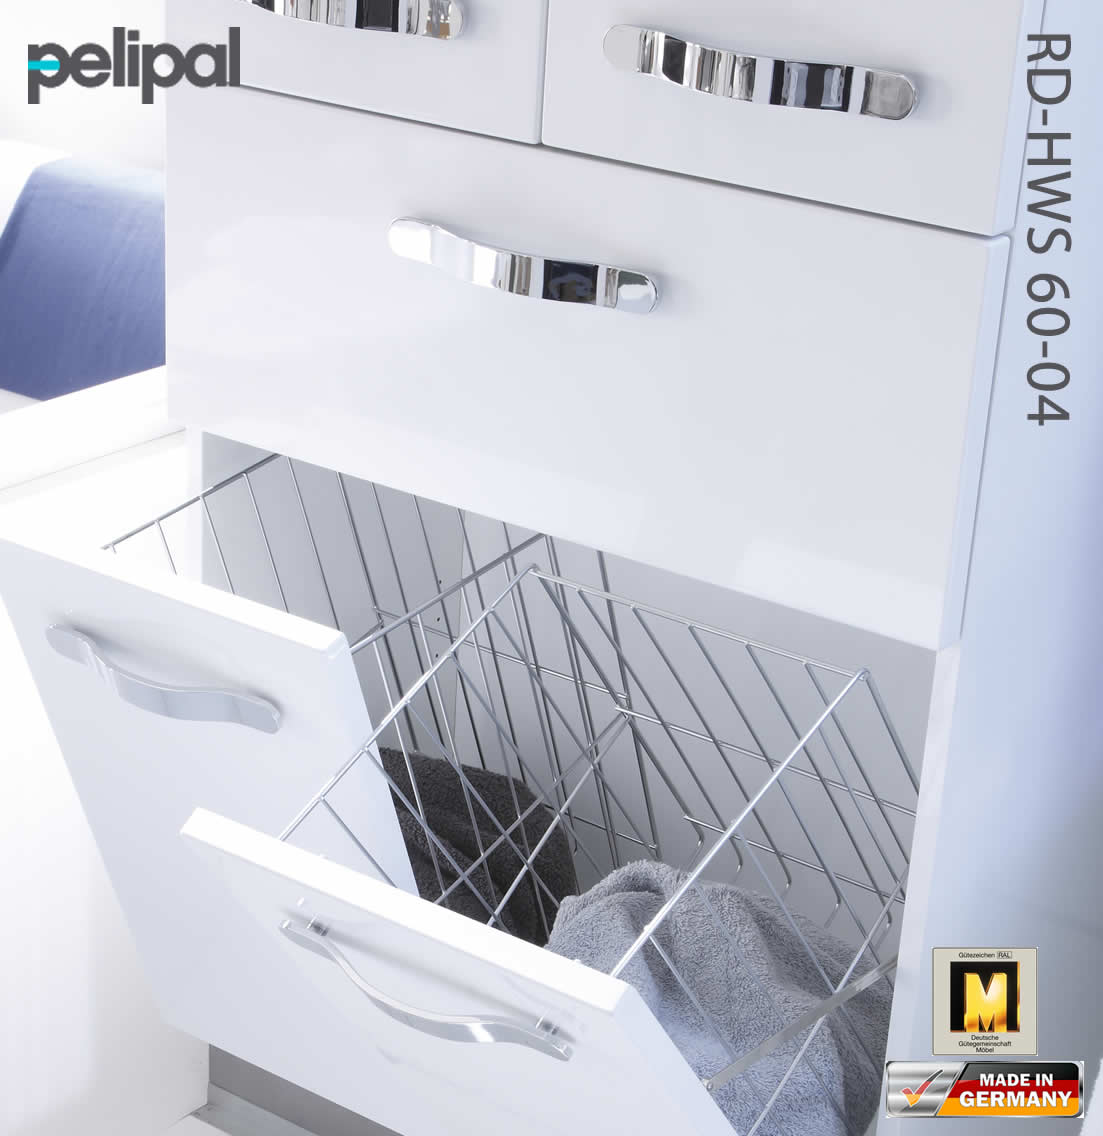 pelipal solitaire 7005 hochschrank 168 cm rd hsw 60 04. Black Bedroom Furniture Sets. Home Design Ideas